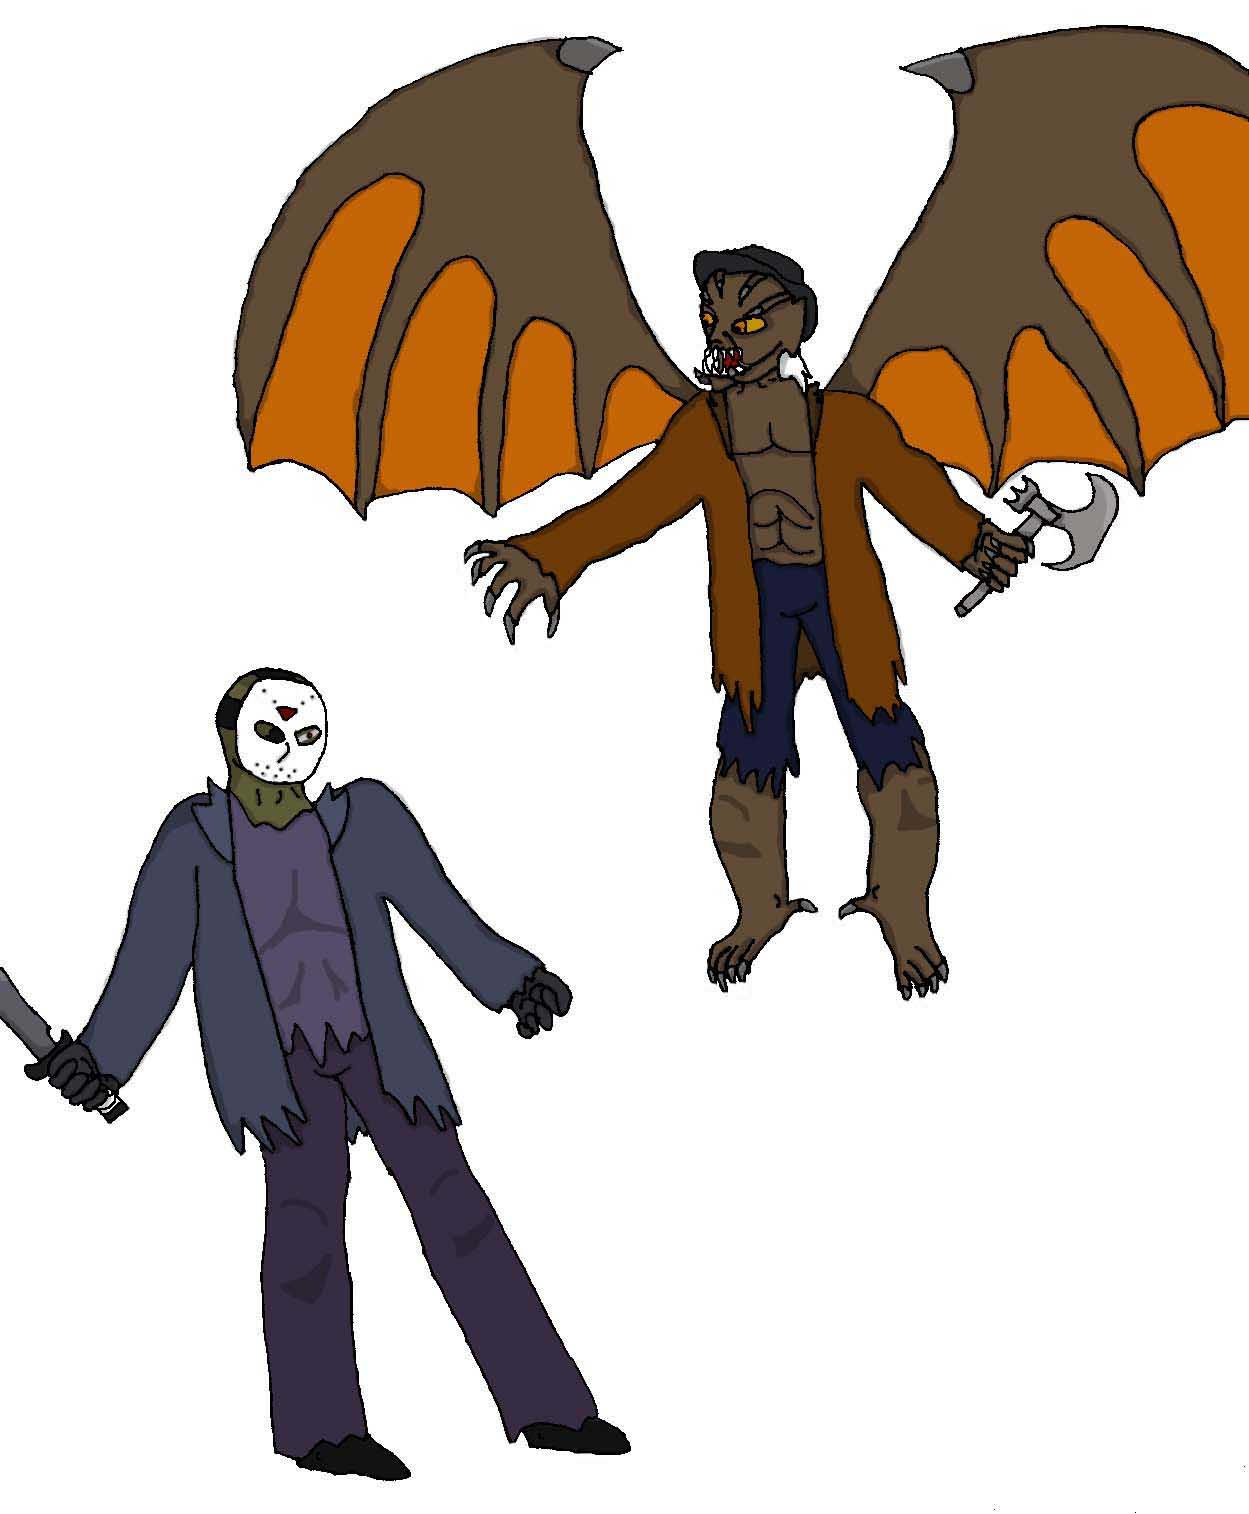 Jeepers Creepers Vs Jason Jason vs the creeper by evil-Jeepers Creepers Vs Freddy Krueger